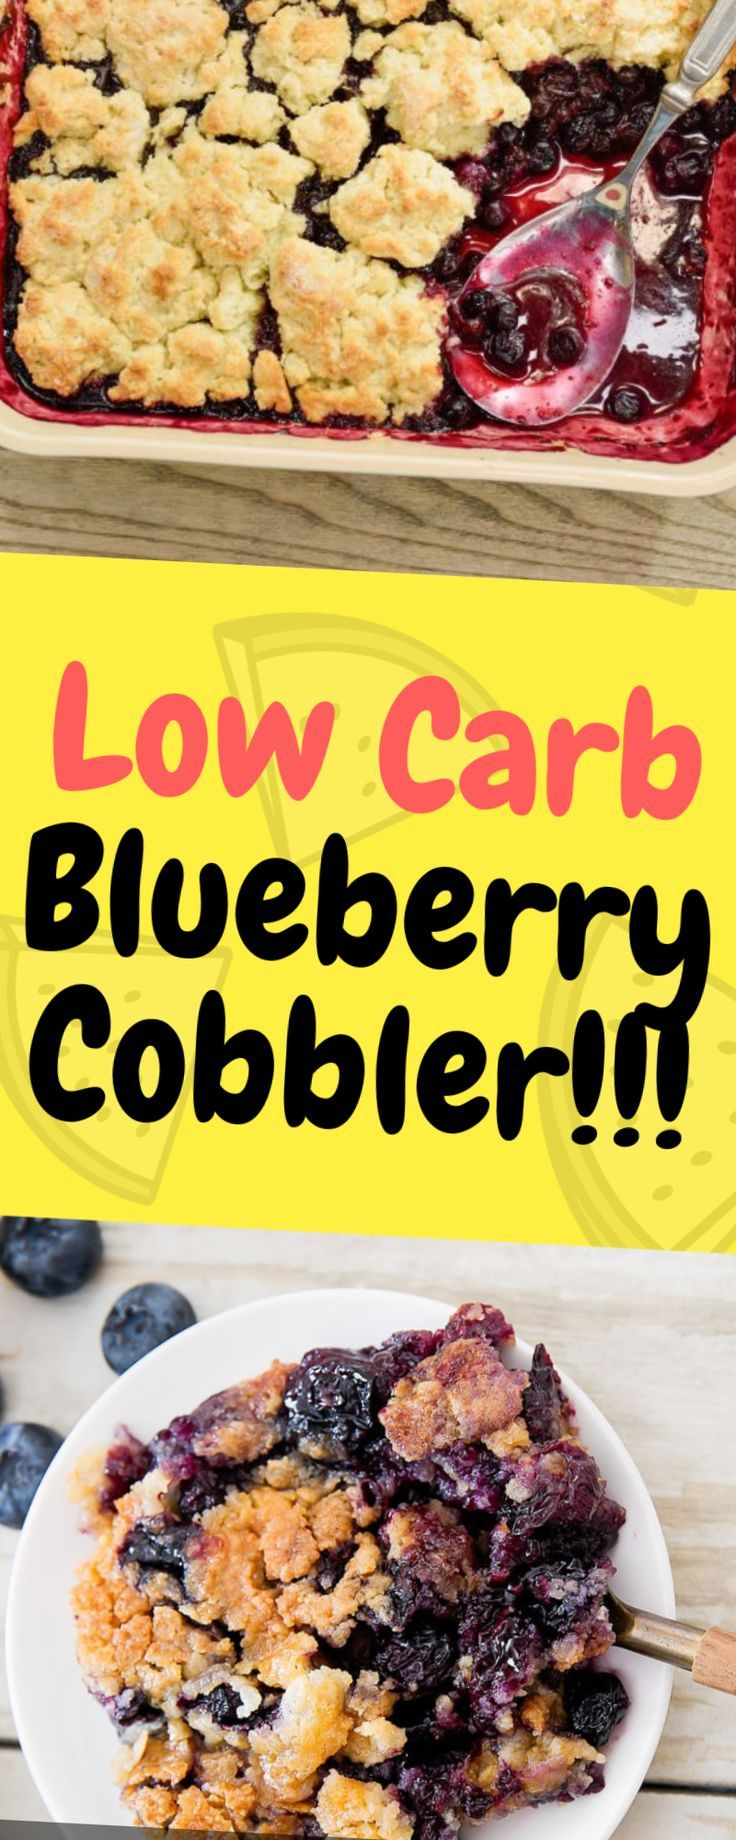 Low Carb Blueberry Cobbler - One of food  - =Low Carb Dinner -